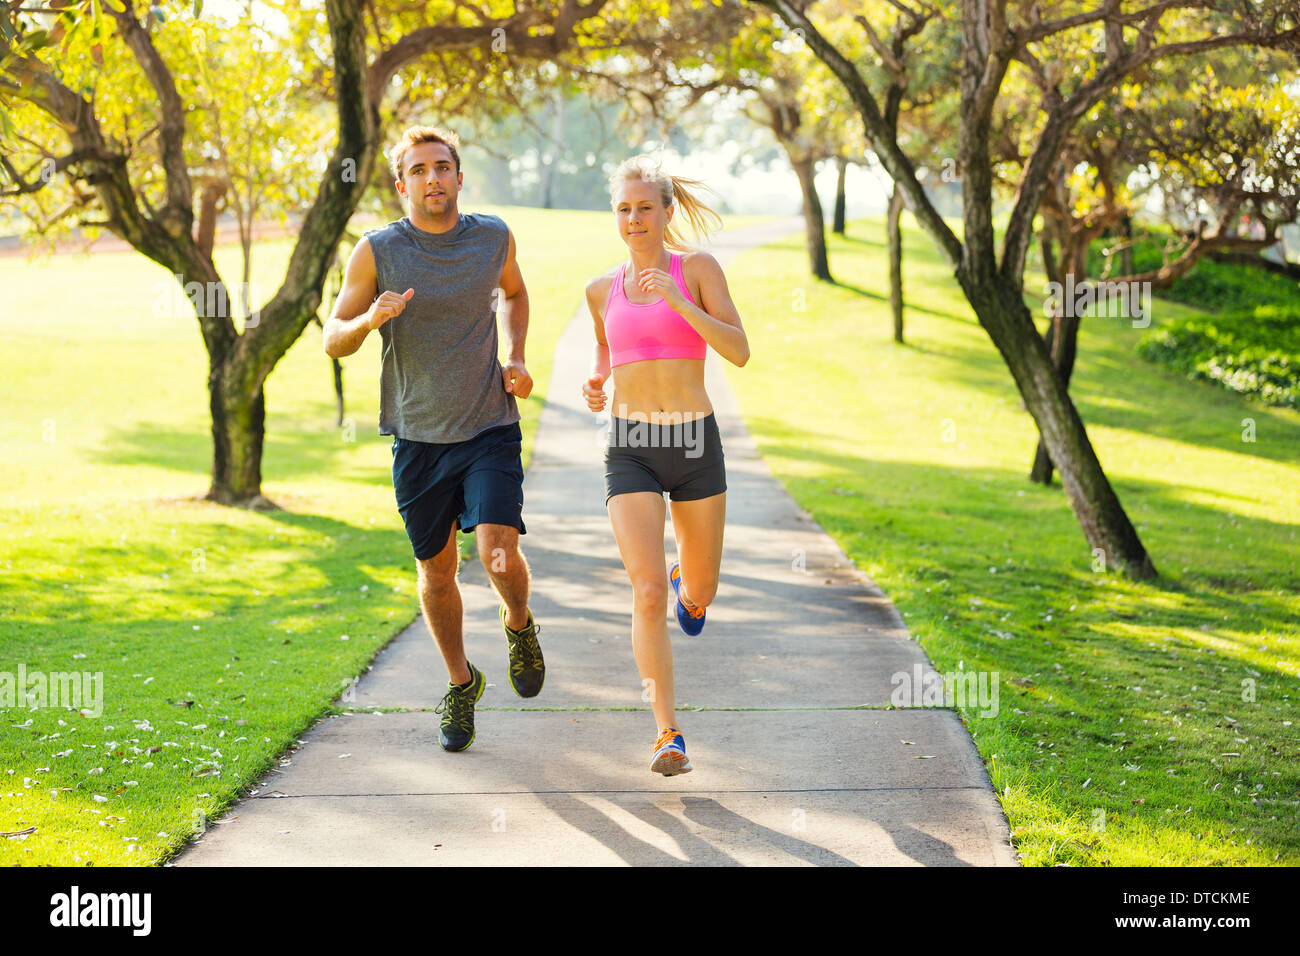 A day jogging in the park essay